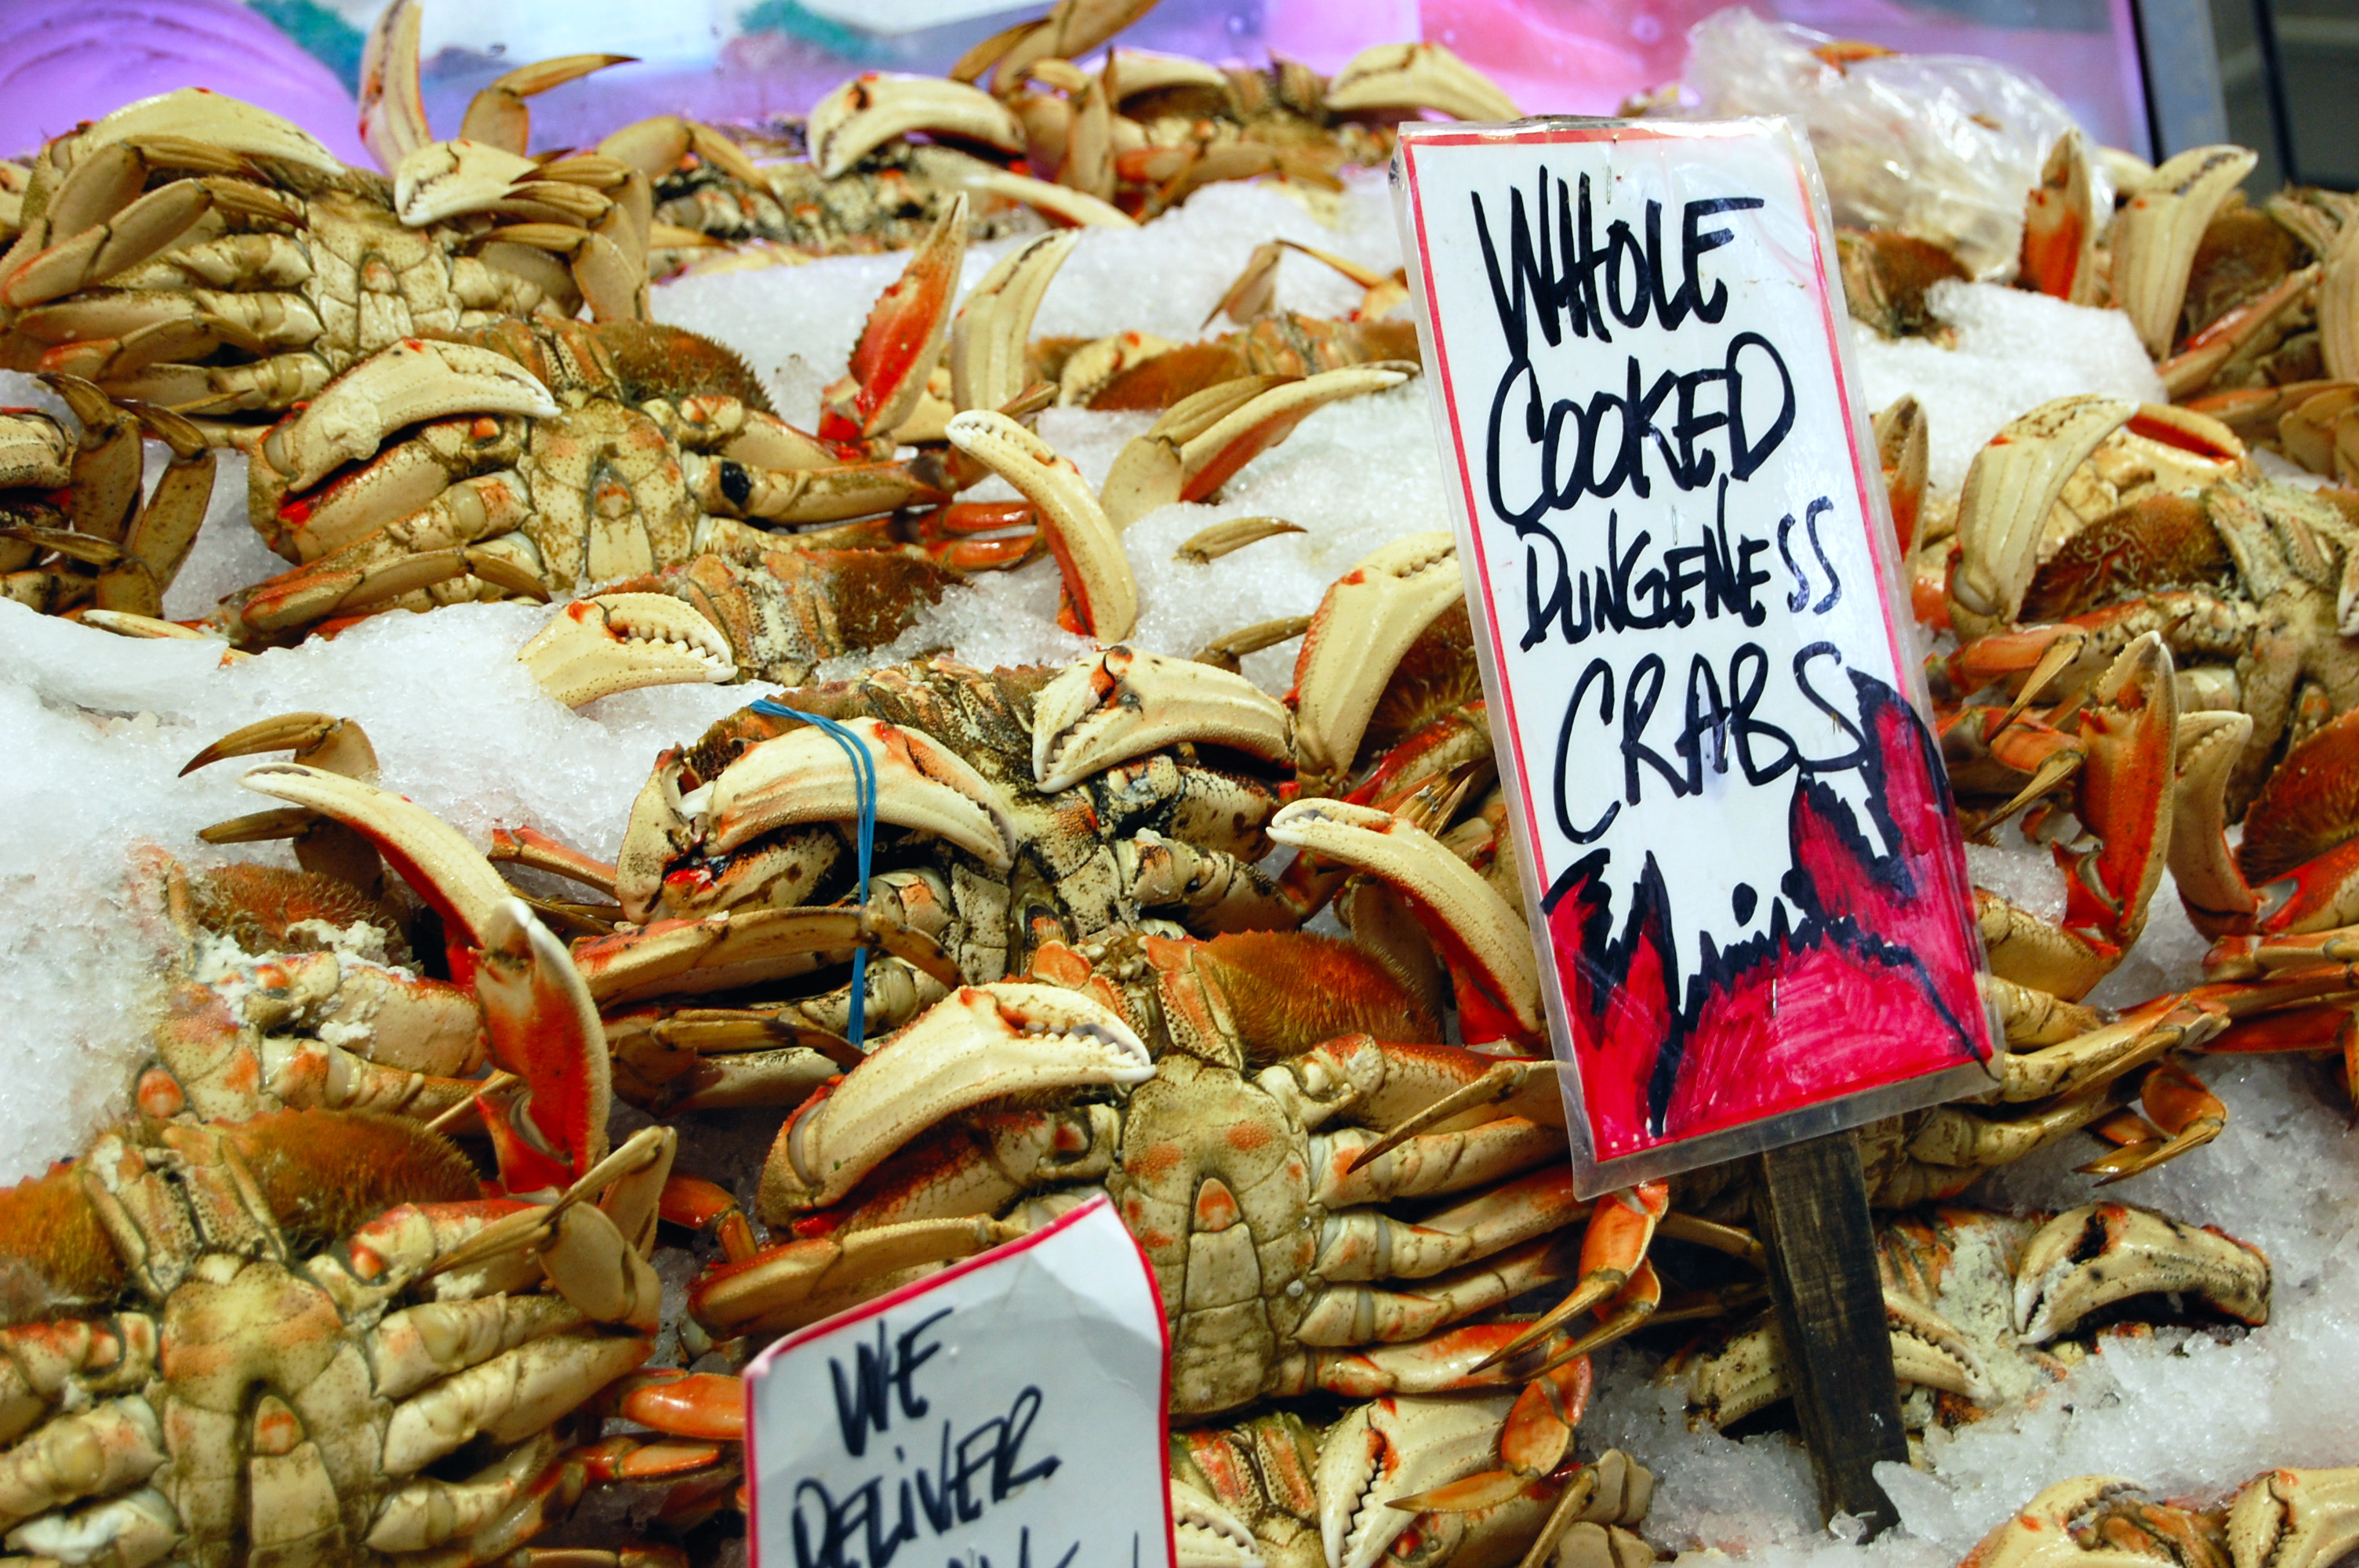 Dungeness crab at Pike Place Market